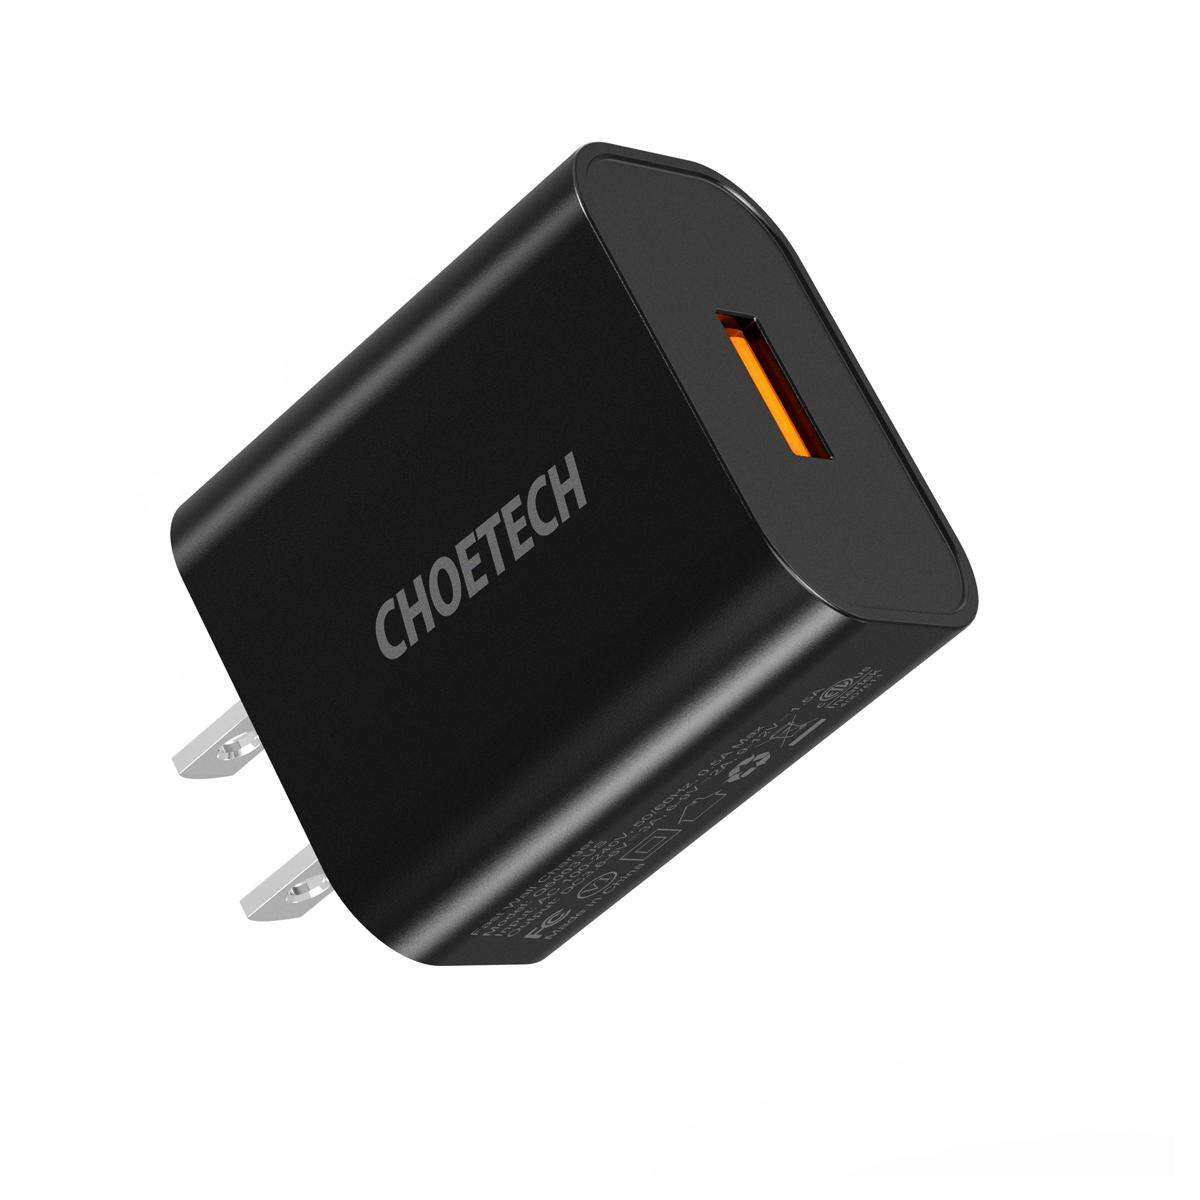 CHOETECH QC 3.0 USB Wall Charger 18W USB A Wall Charger Quick Charge Compatible with Apple iPhone iPad Samsung Galaxy and More